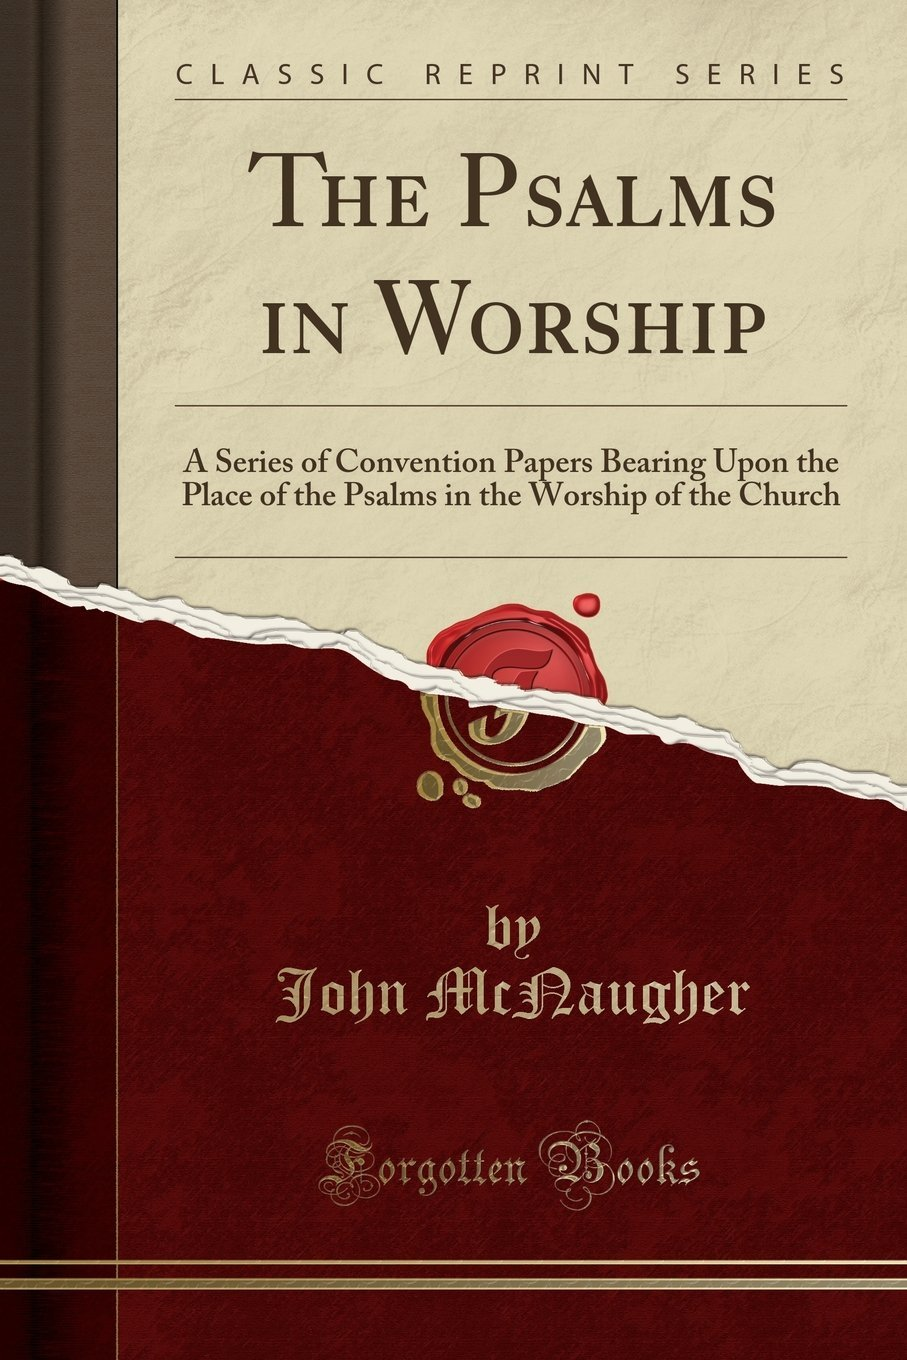 The Psalms in Worship: A Series of Convention Papers Bearing Upon the Place of the Psalms in the Worship of the Church (Classic Reprint) pdf